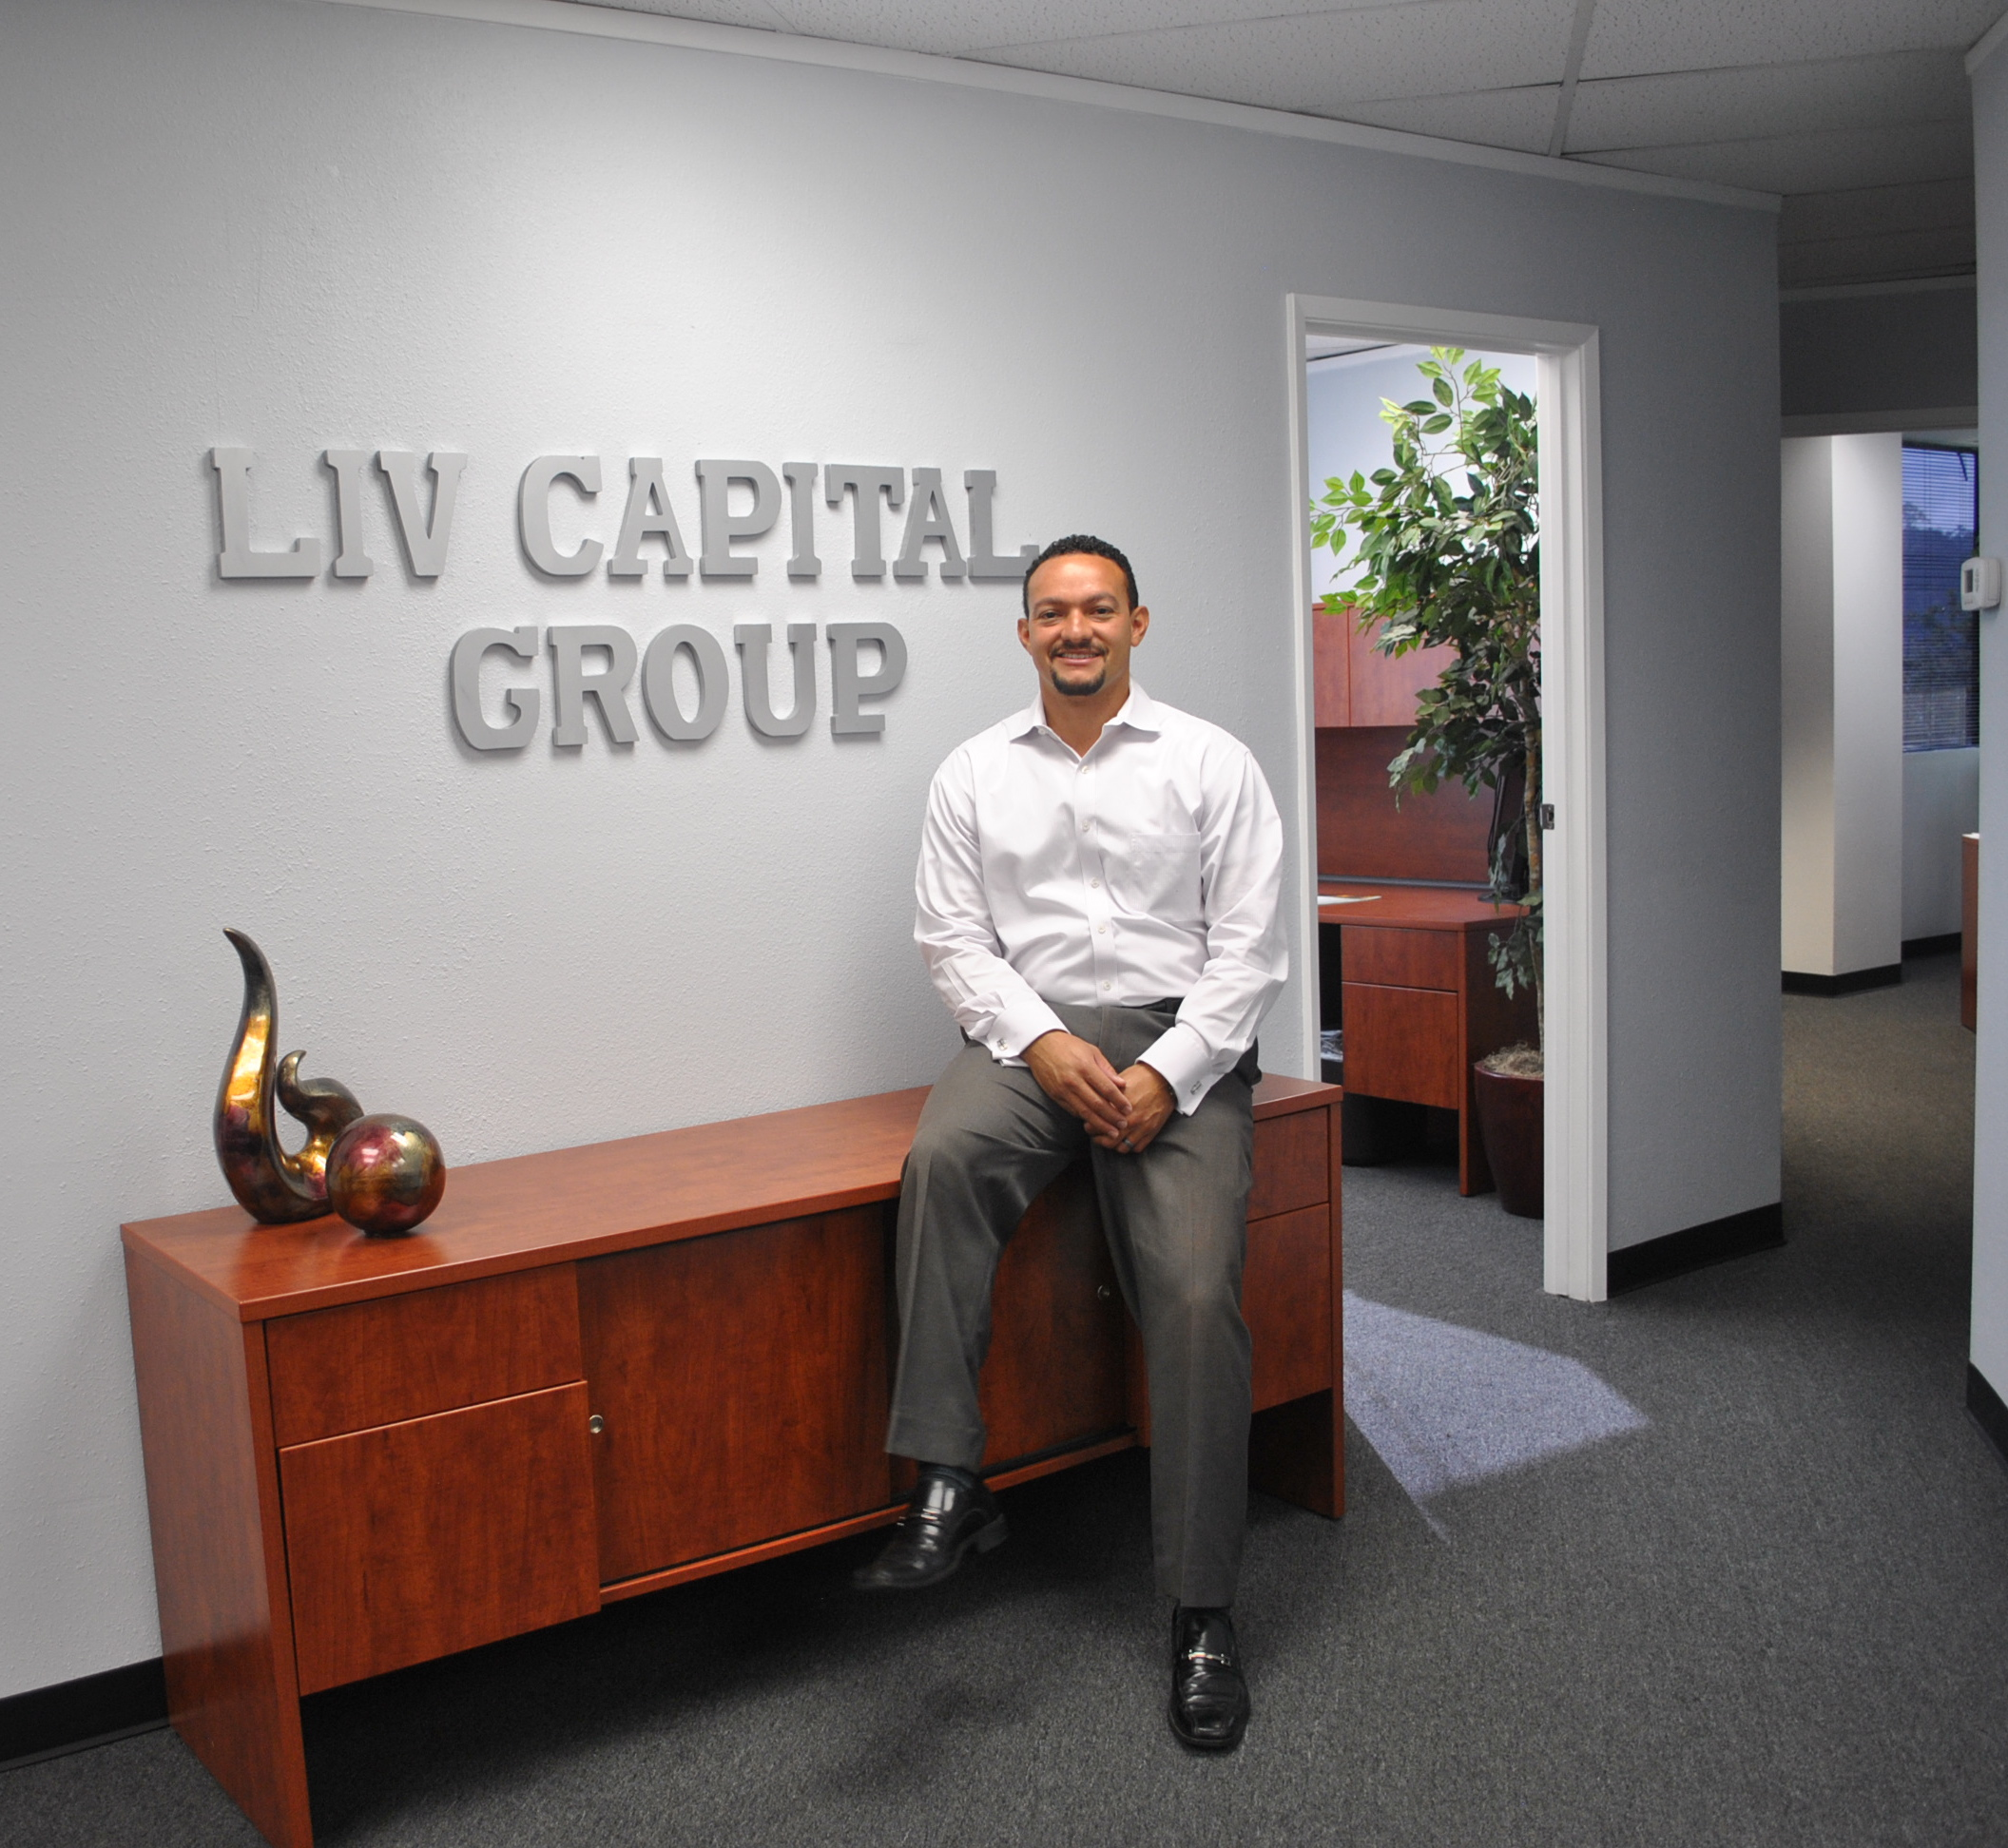 Montaño launched LIV Capital Group which brings together private investors for real estate projects.